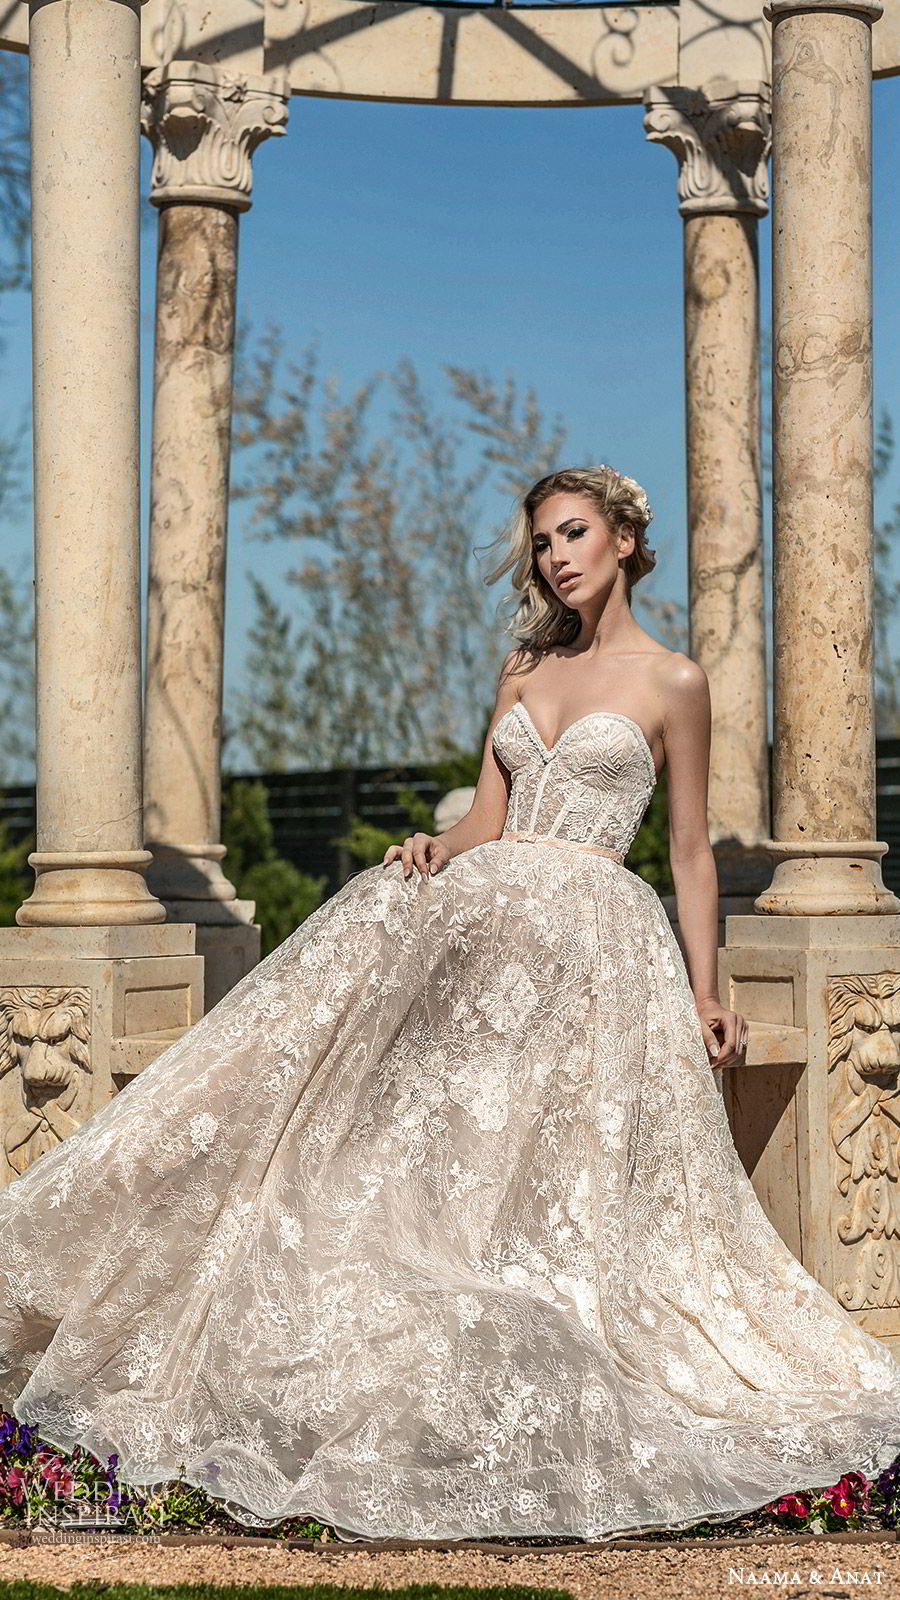 naama anat spring 2020 bridal strapless sweetheart fully embellished a line ball gown wedding dress (3) sweep train romantic elegant fv